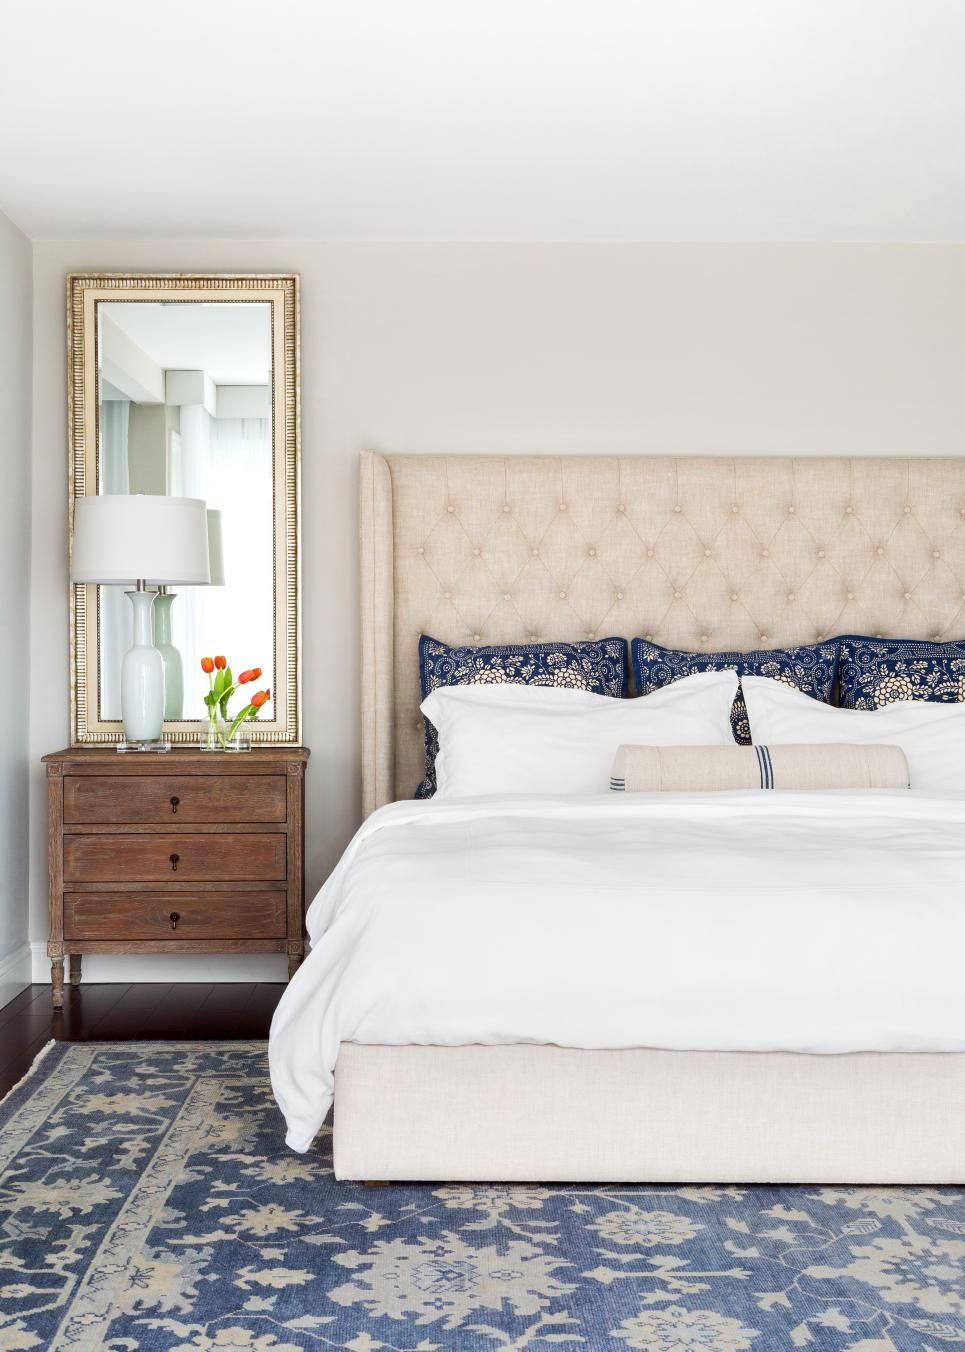 A custom upholstered headboard tall rectangular mirrors and antique